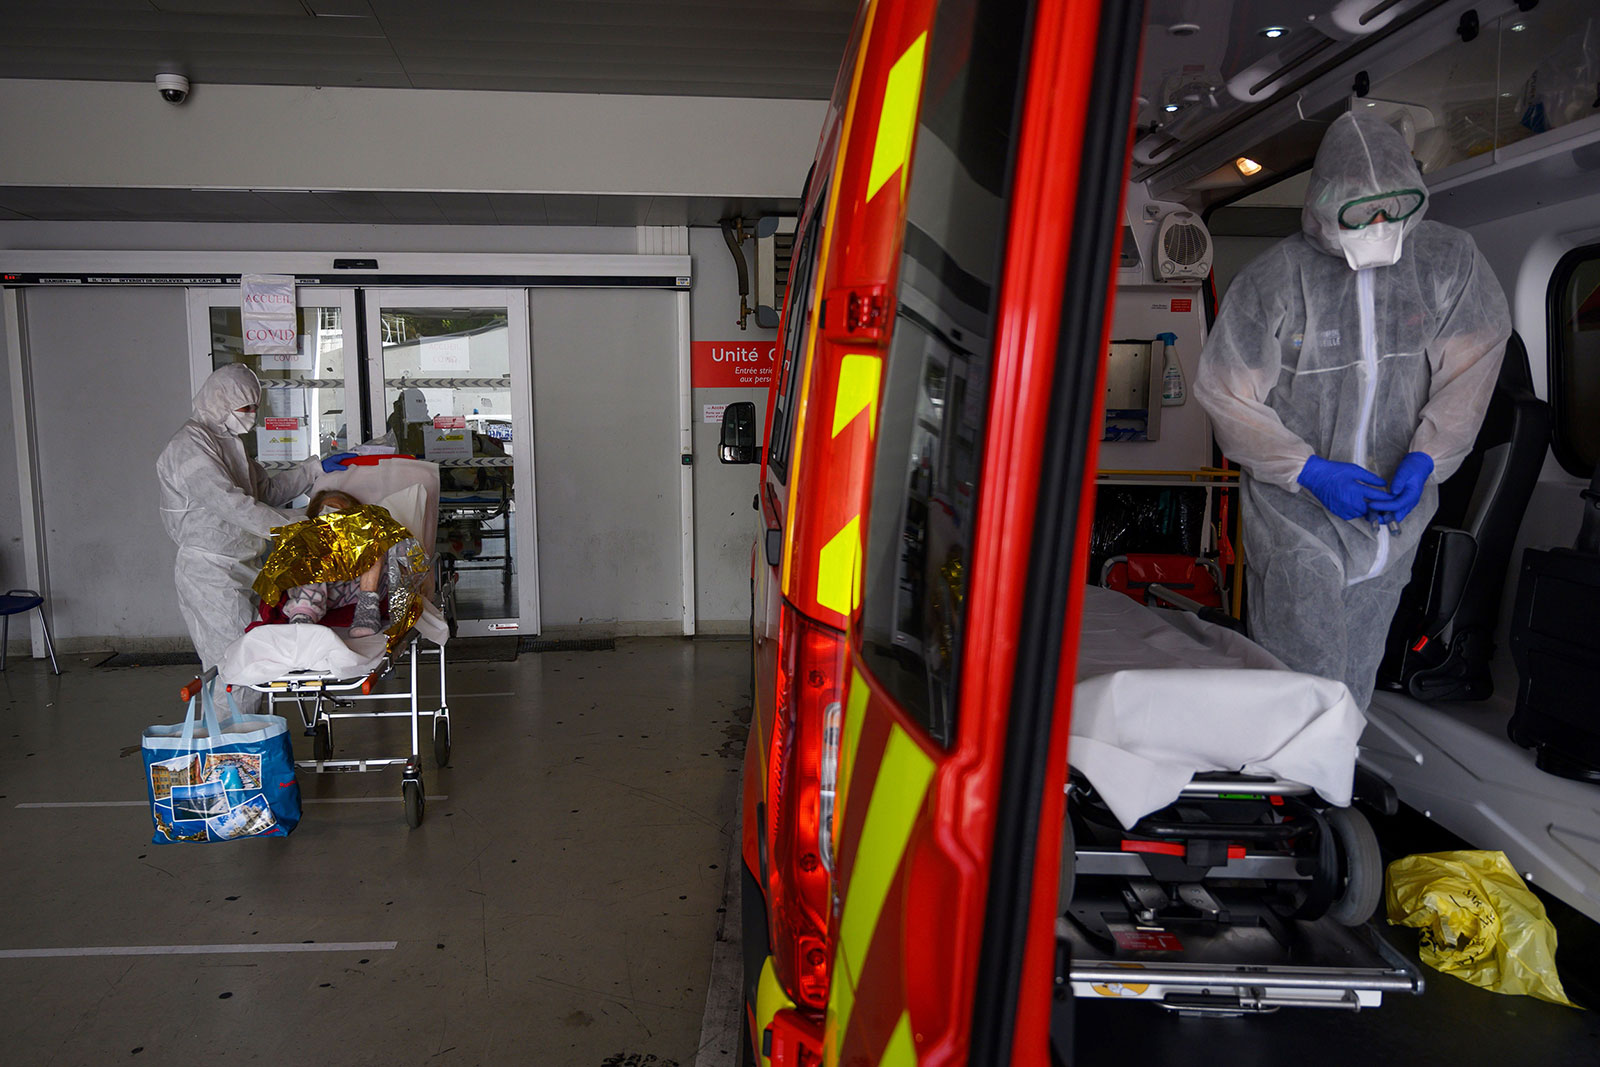 Firefighters bring a suspected coronavirus patient to a hospital in Marseille, France, on April 15.